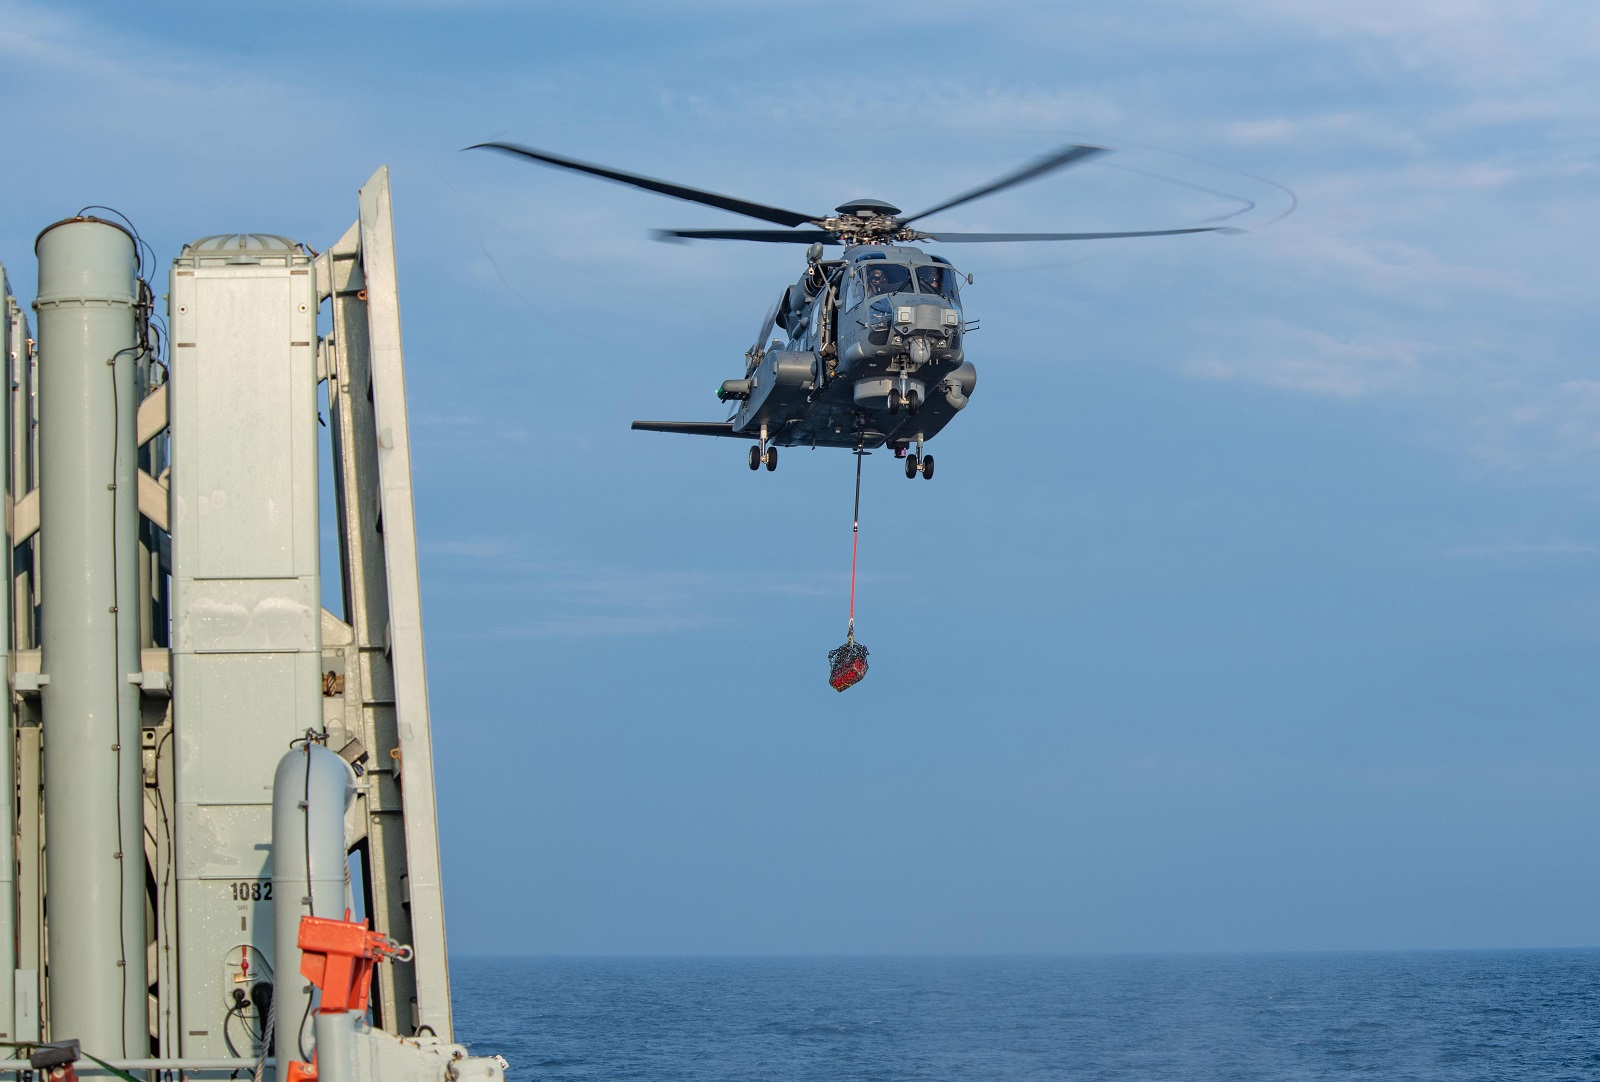 The CH-148 Cyclone, RAPTOR, embarked on HMCS Toronto, carries out vertical replenishment training in the Black Sea during Exercise SEA SHIELD on April 9, 2019.